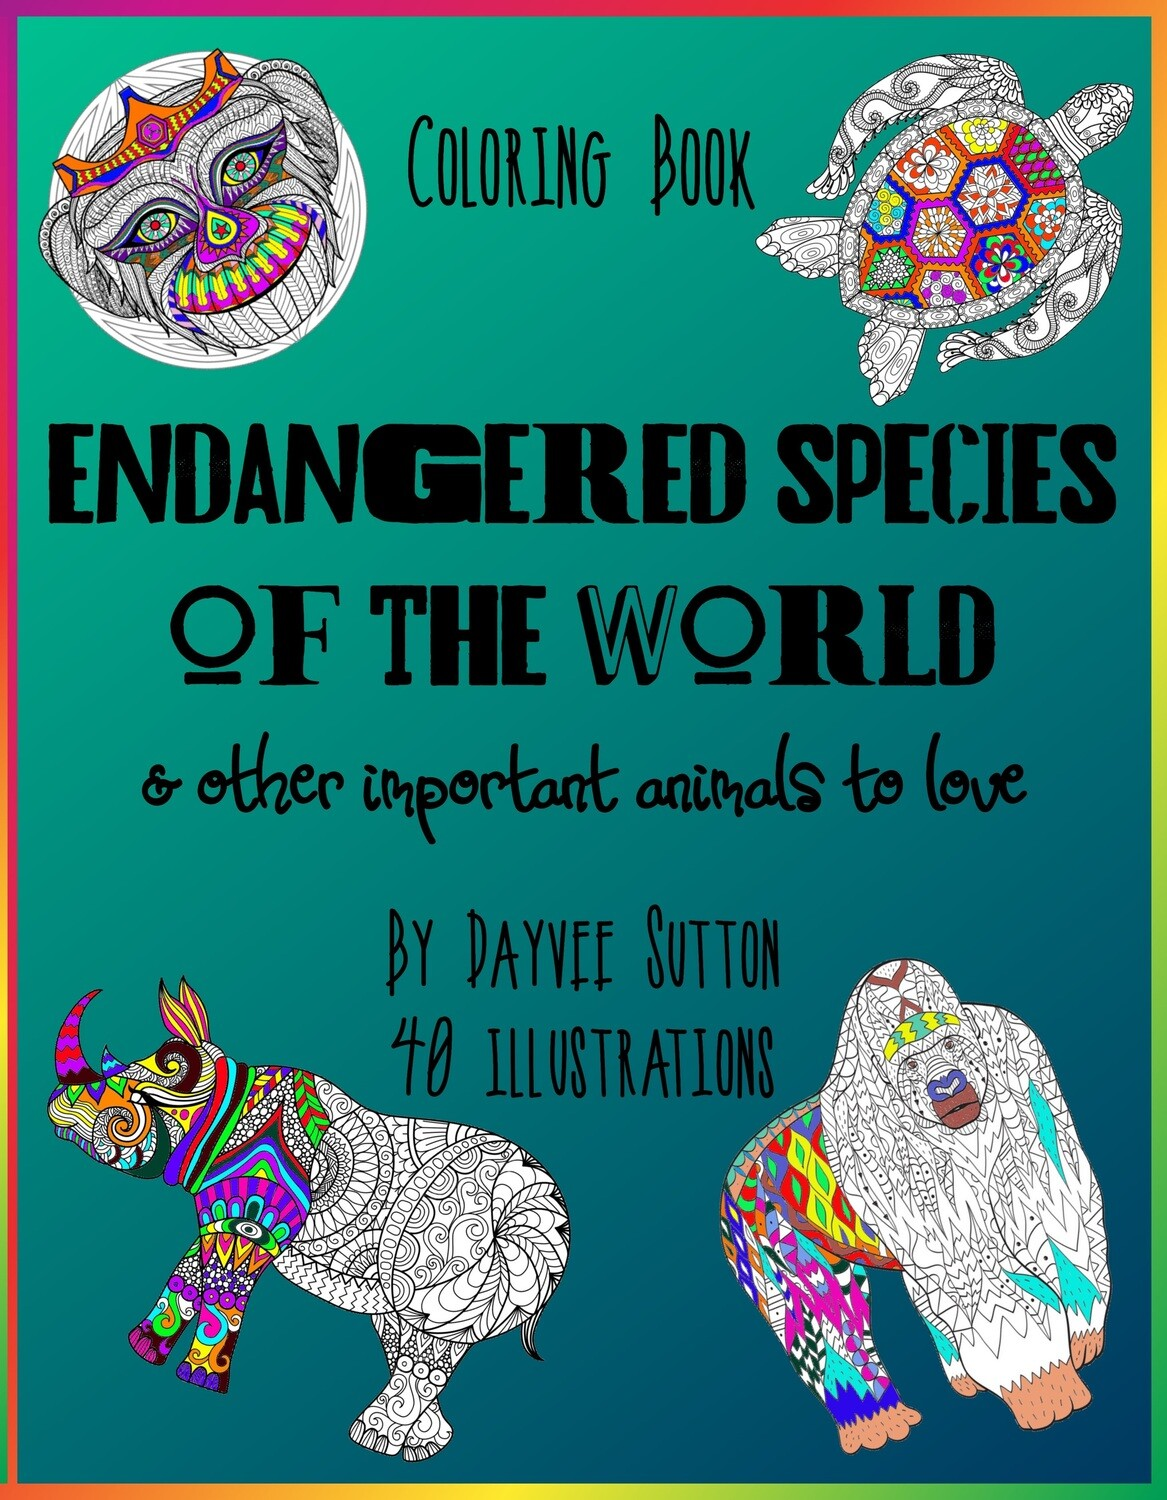 ENDANGERED SPECIES OF THE WORLD & other important animals to love - PDF download